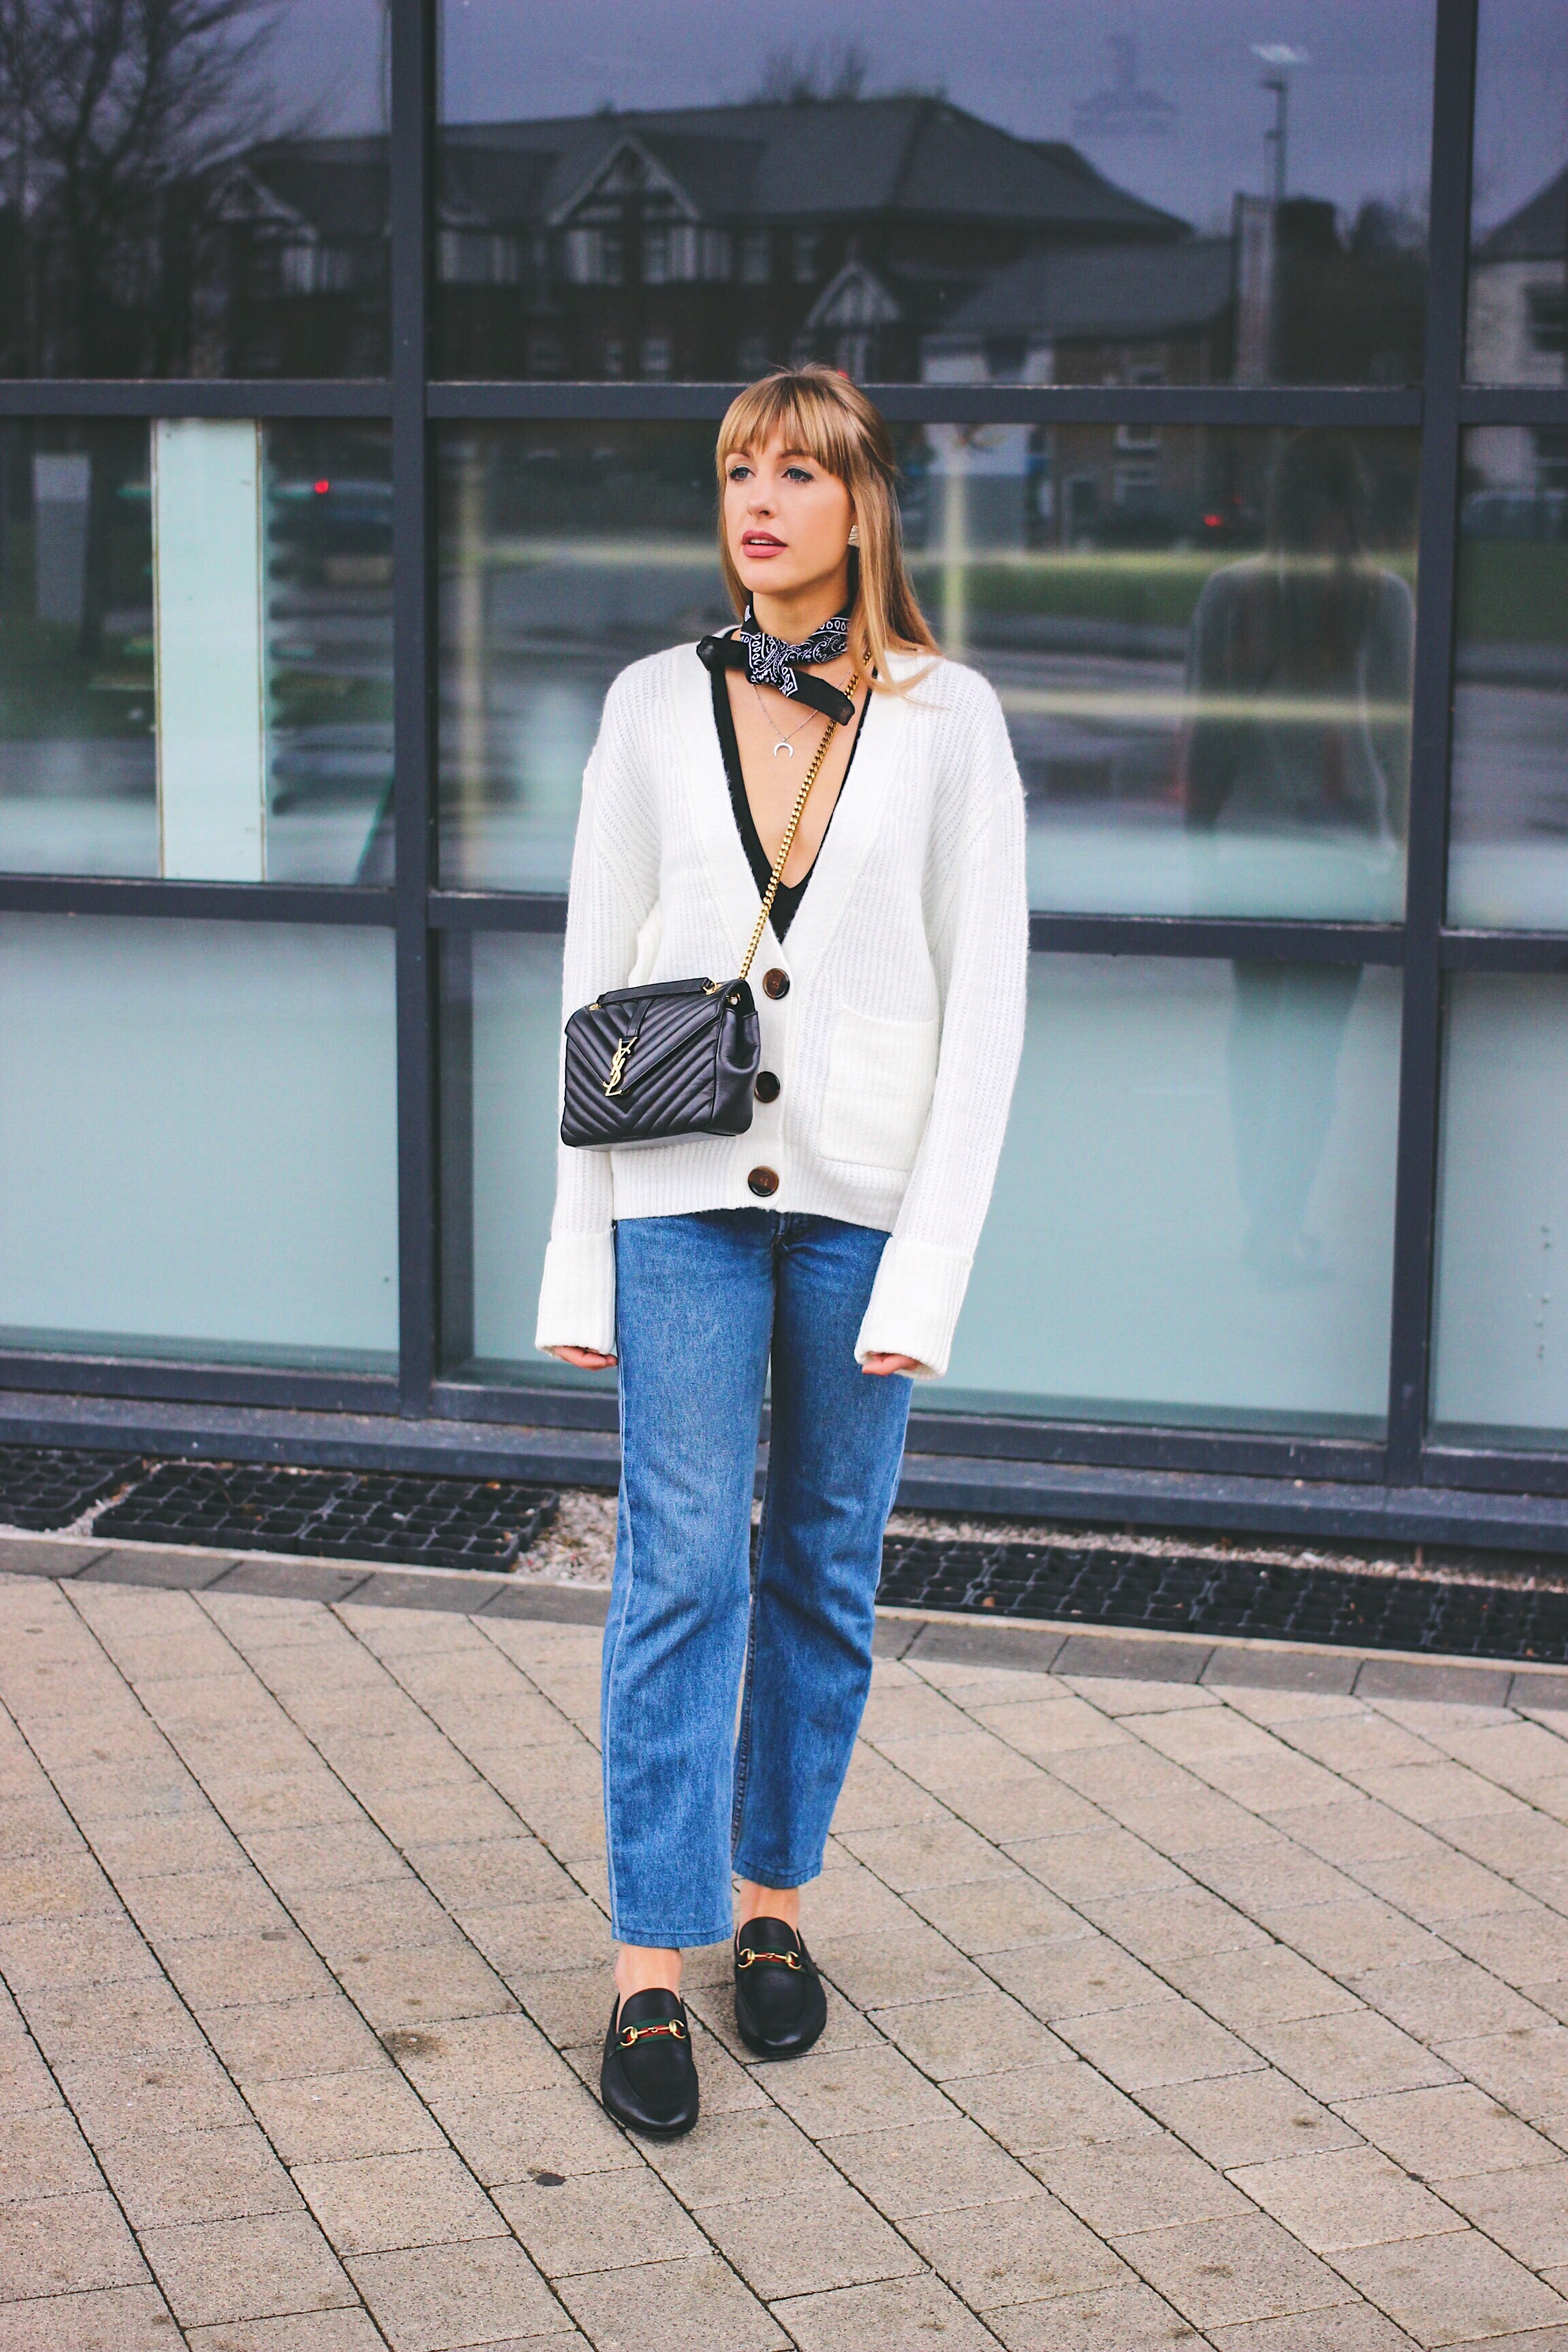 Asos Cardigan And Affordable Outfit On Uk Fashion Blog